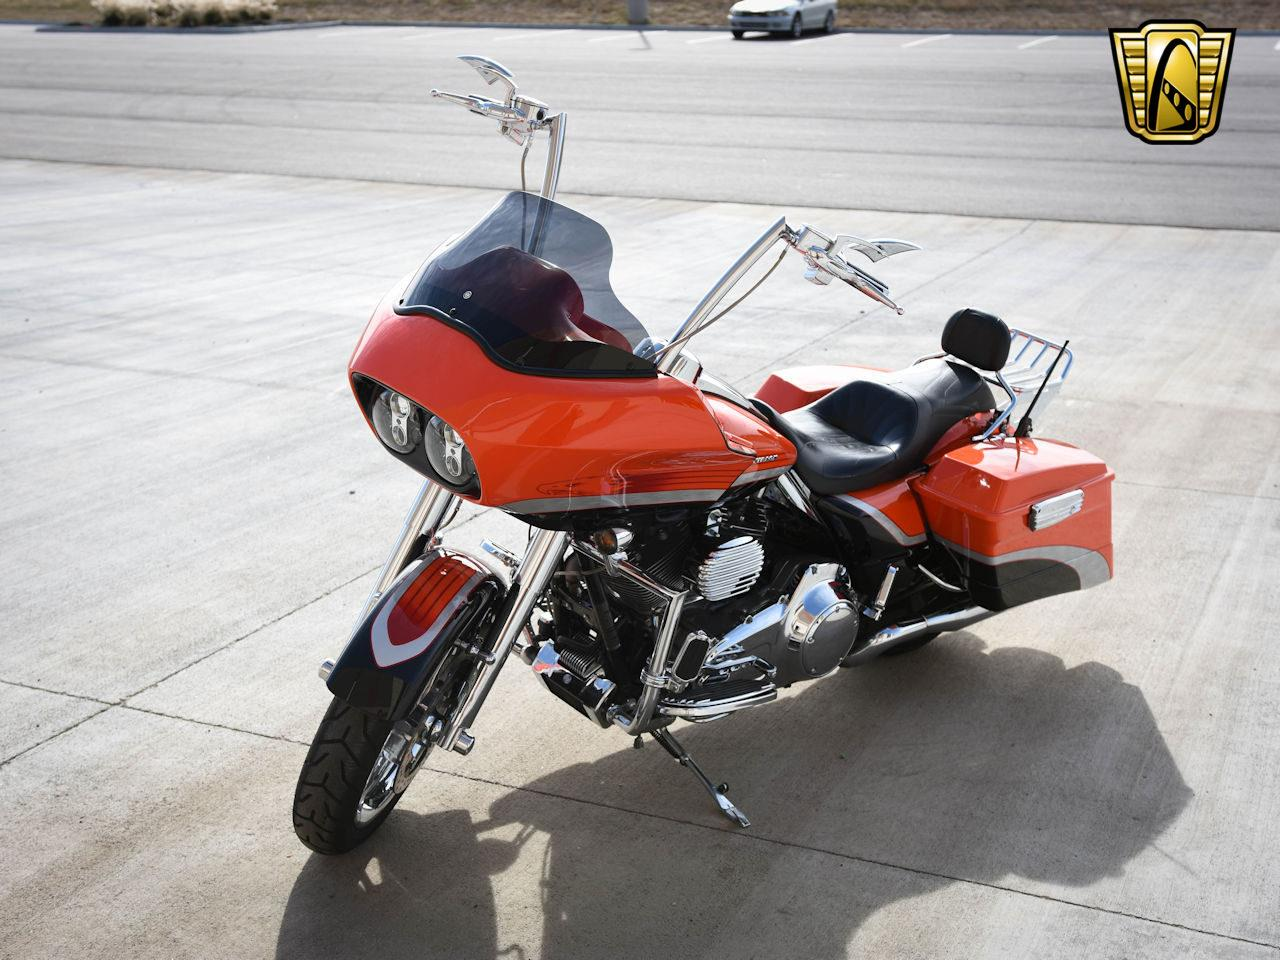 Large Picture of '09 Motorcycle - M79A